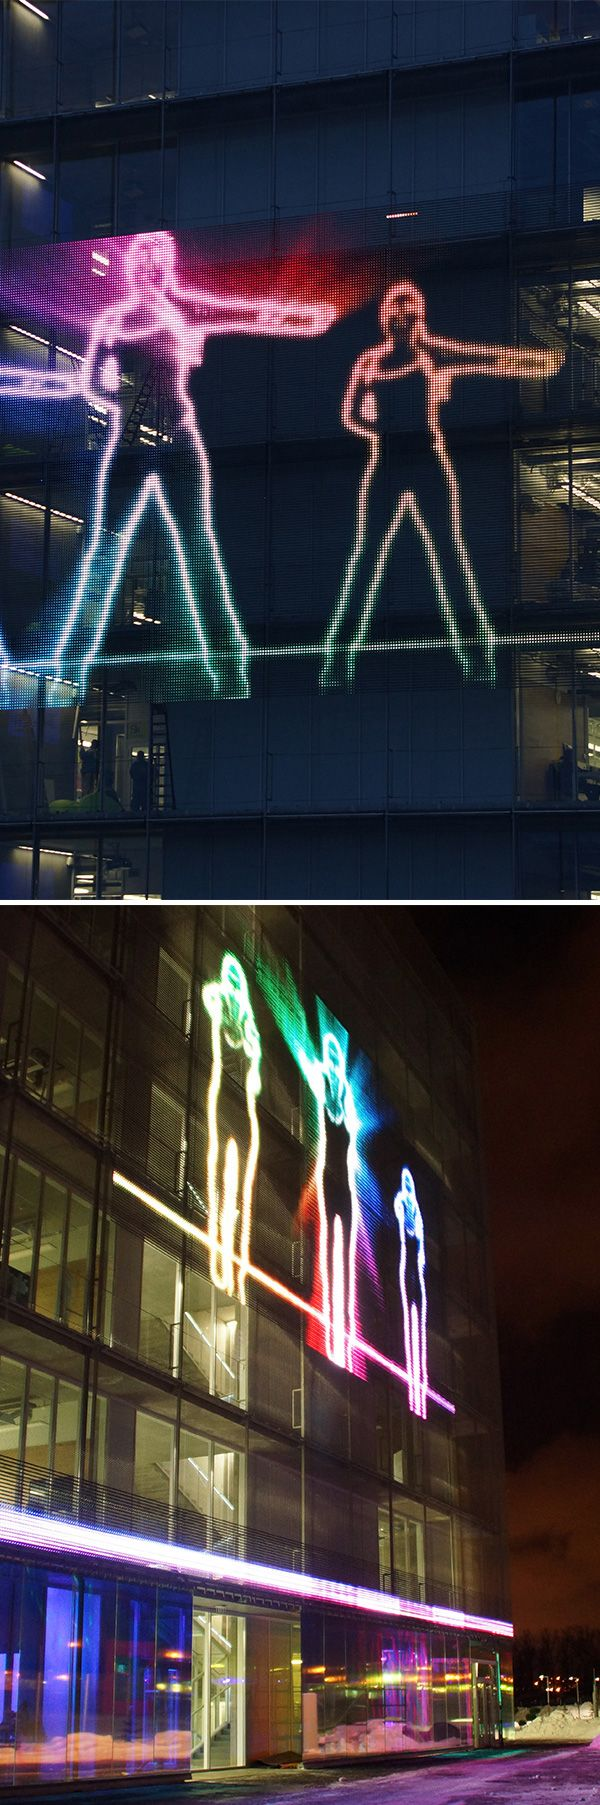 The innovative transparent LED mesh media facade IMAGIC WEAVE by Haver & Boecker easily transforms façades into exciting transparent canvases for vibrant, large-scale communication. Project: Skolkovo Hypercube, Moscow